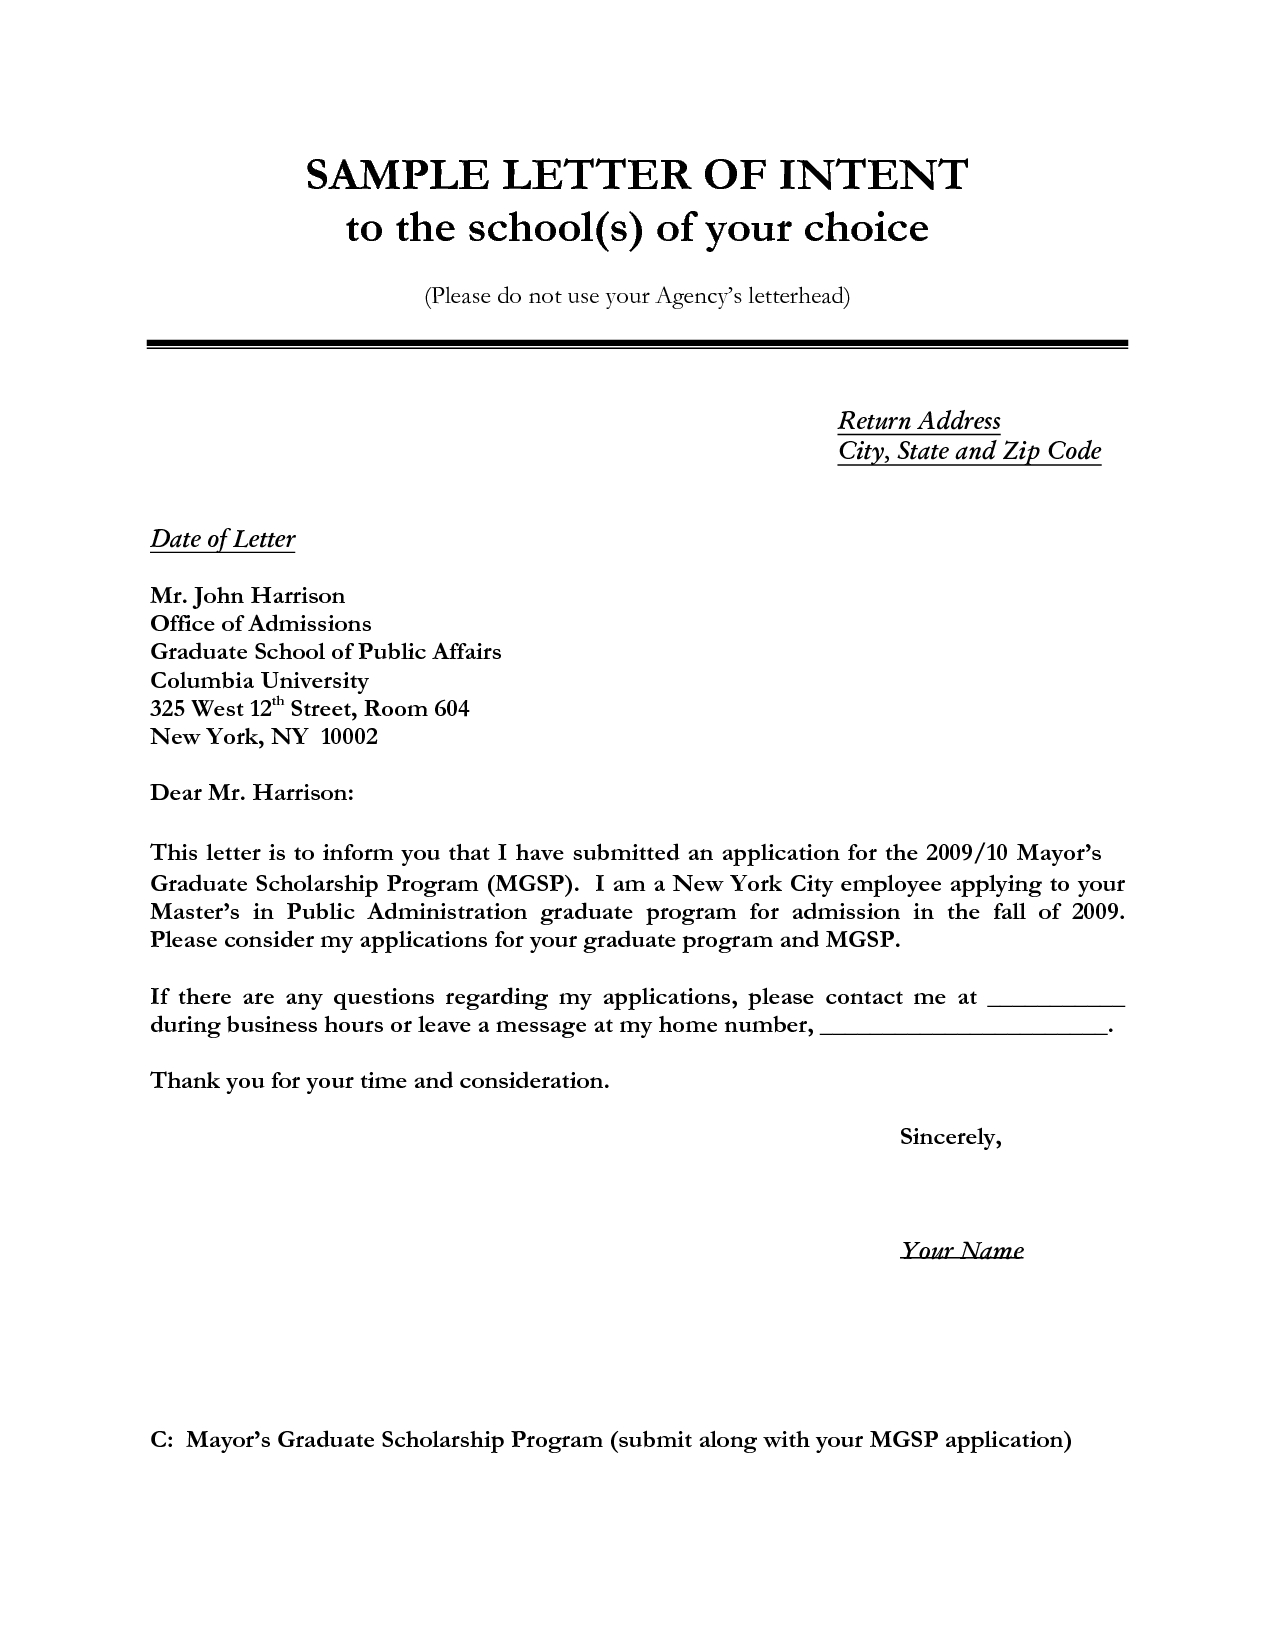 Formal Letter Template - Letter Of Intent Sample